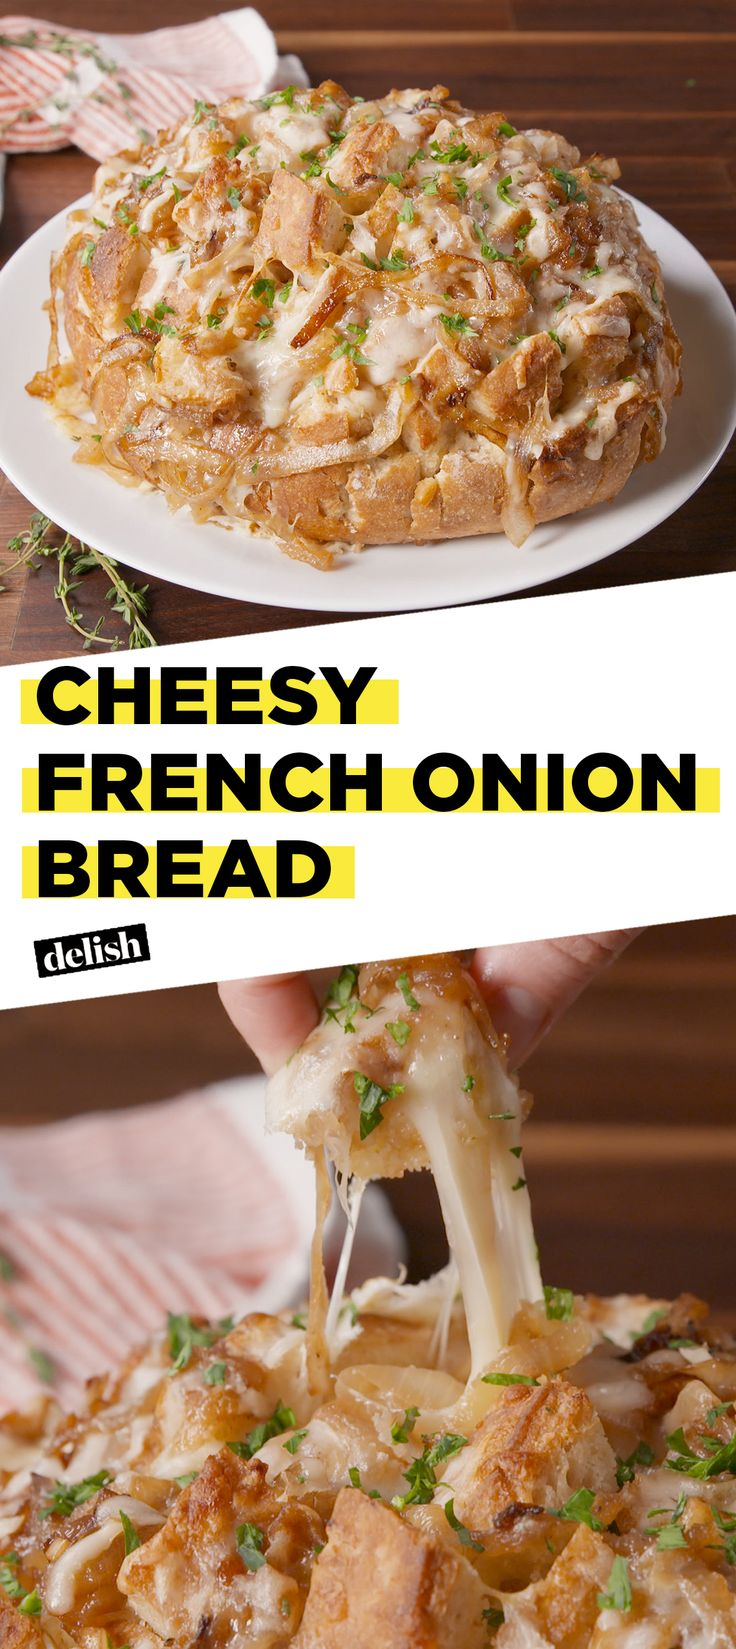 Cheesy French Onion Bread is like your favorite bowl of soup on crack. Get the recipe at Delish.com. #recipe #easyrecipe #frenchonionsoup #cheese #bread #soup #onion #veggies #beef #garlic #gruyere